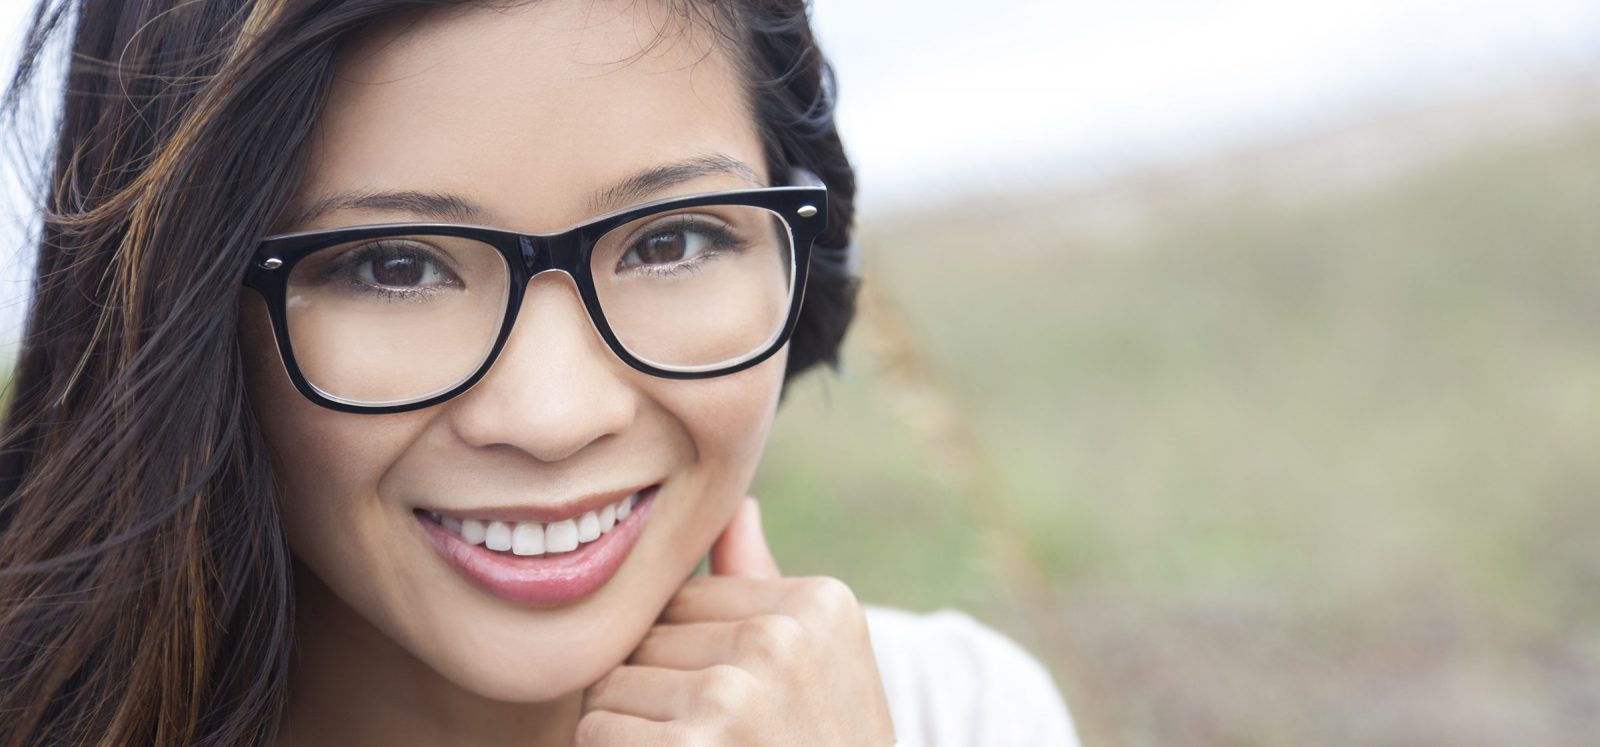 Smiling happy beautiful young Asian Chinese woman or girl wearing geek glasses outside